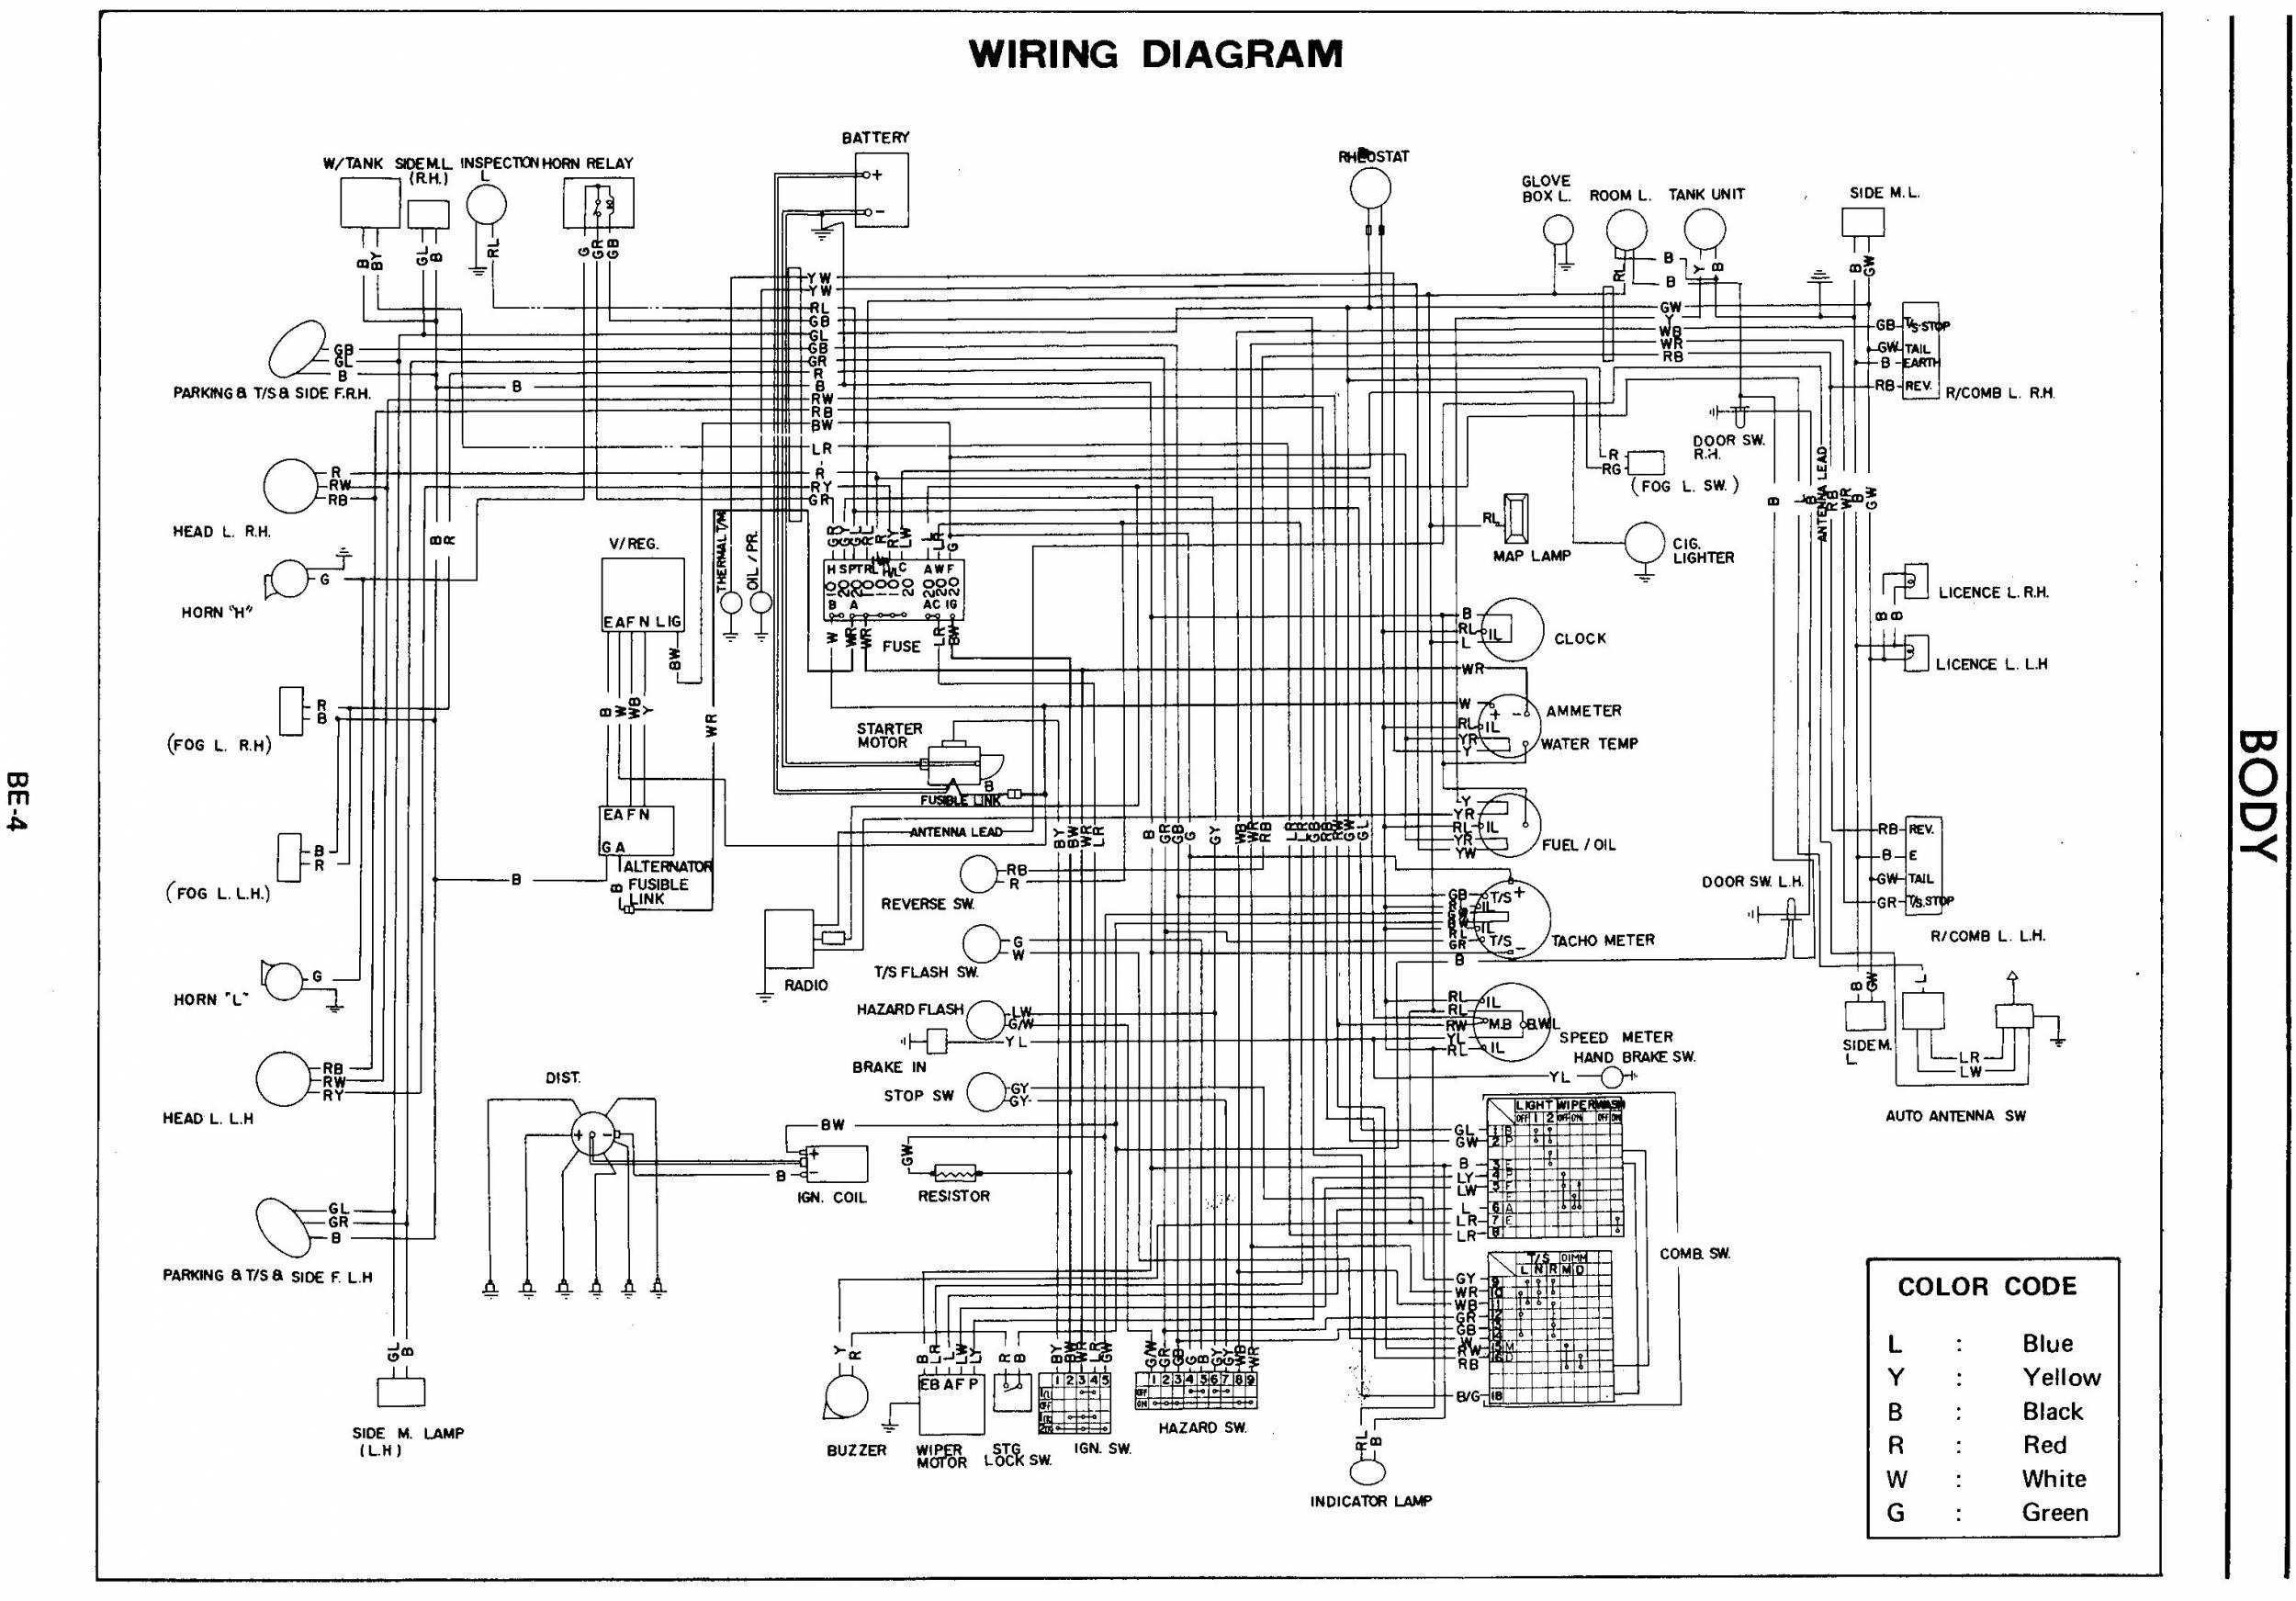 Mercedes Sprinter Wiring Diagram Pdf Sample Download S13 Horn Best Benz W203